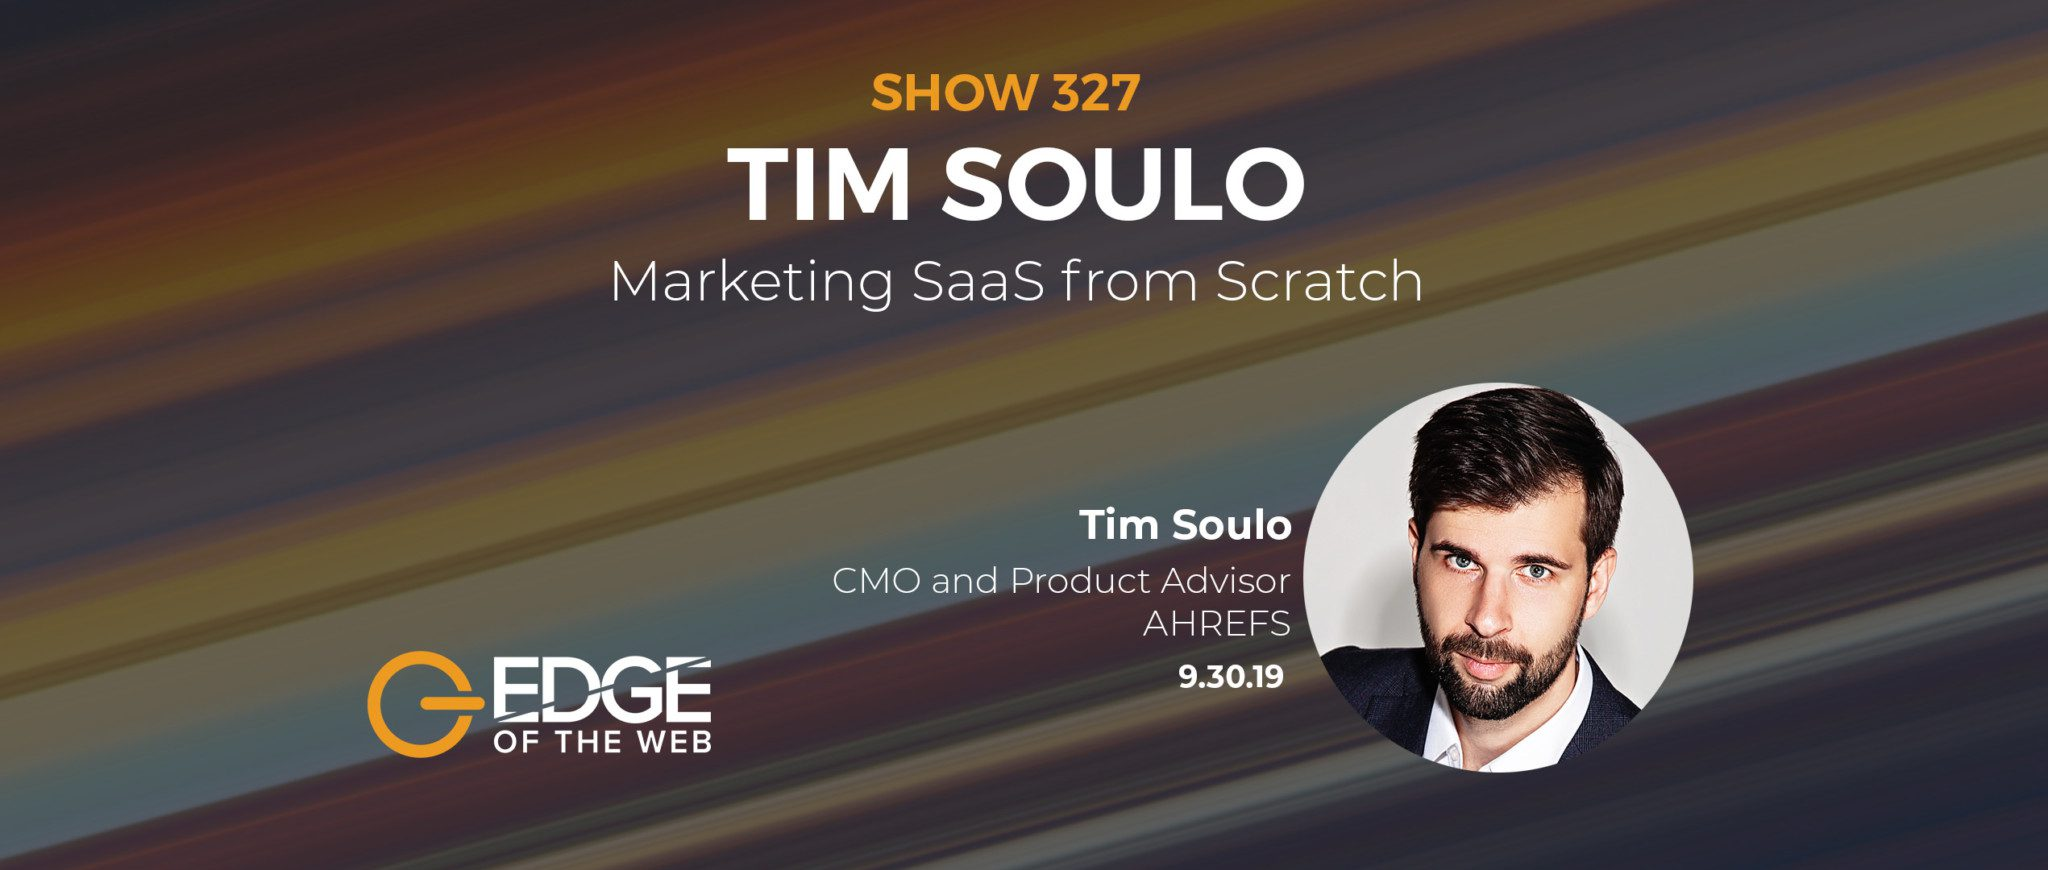 Show 327: Marketing SaaS from Scratch, featuring Tim Soulo